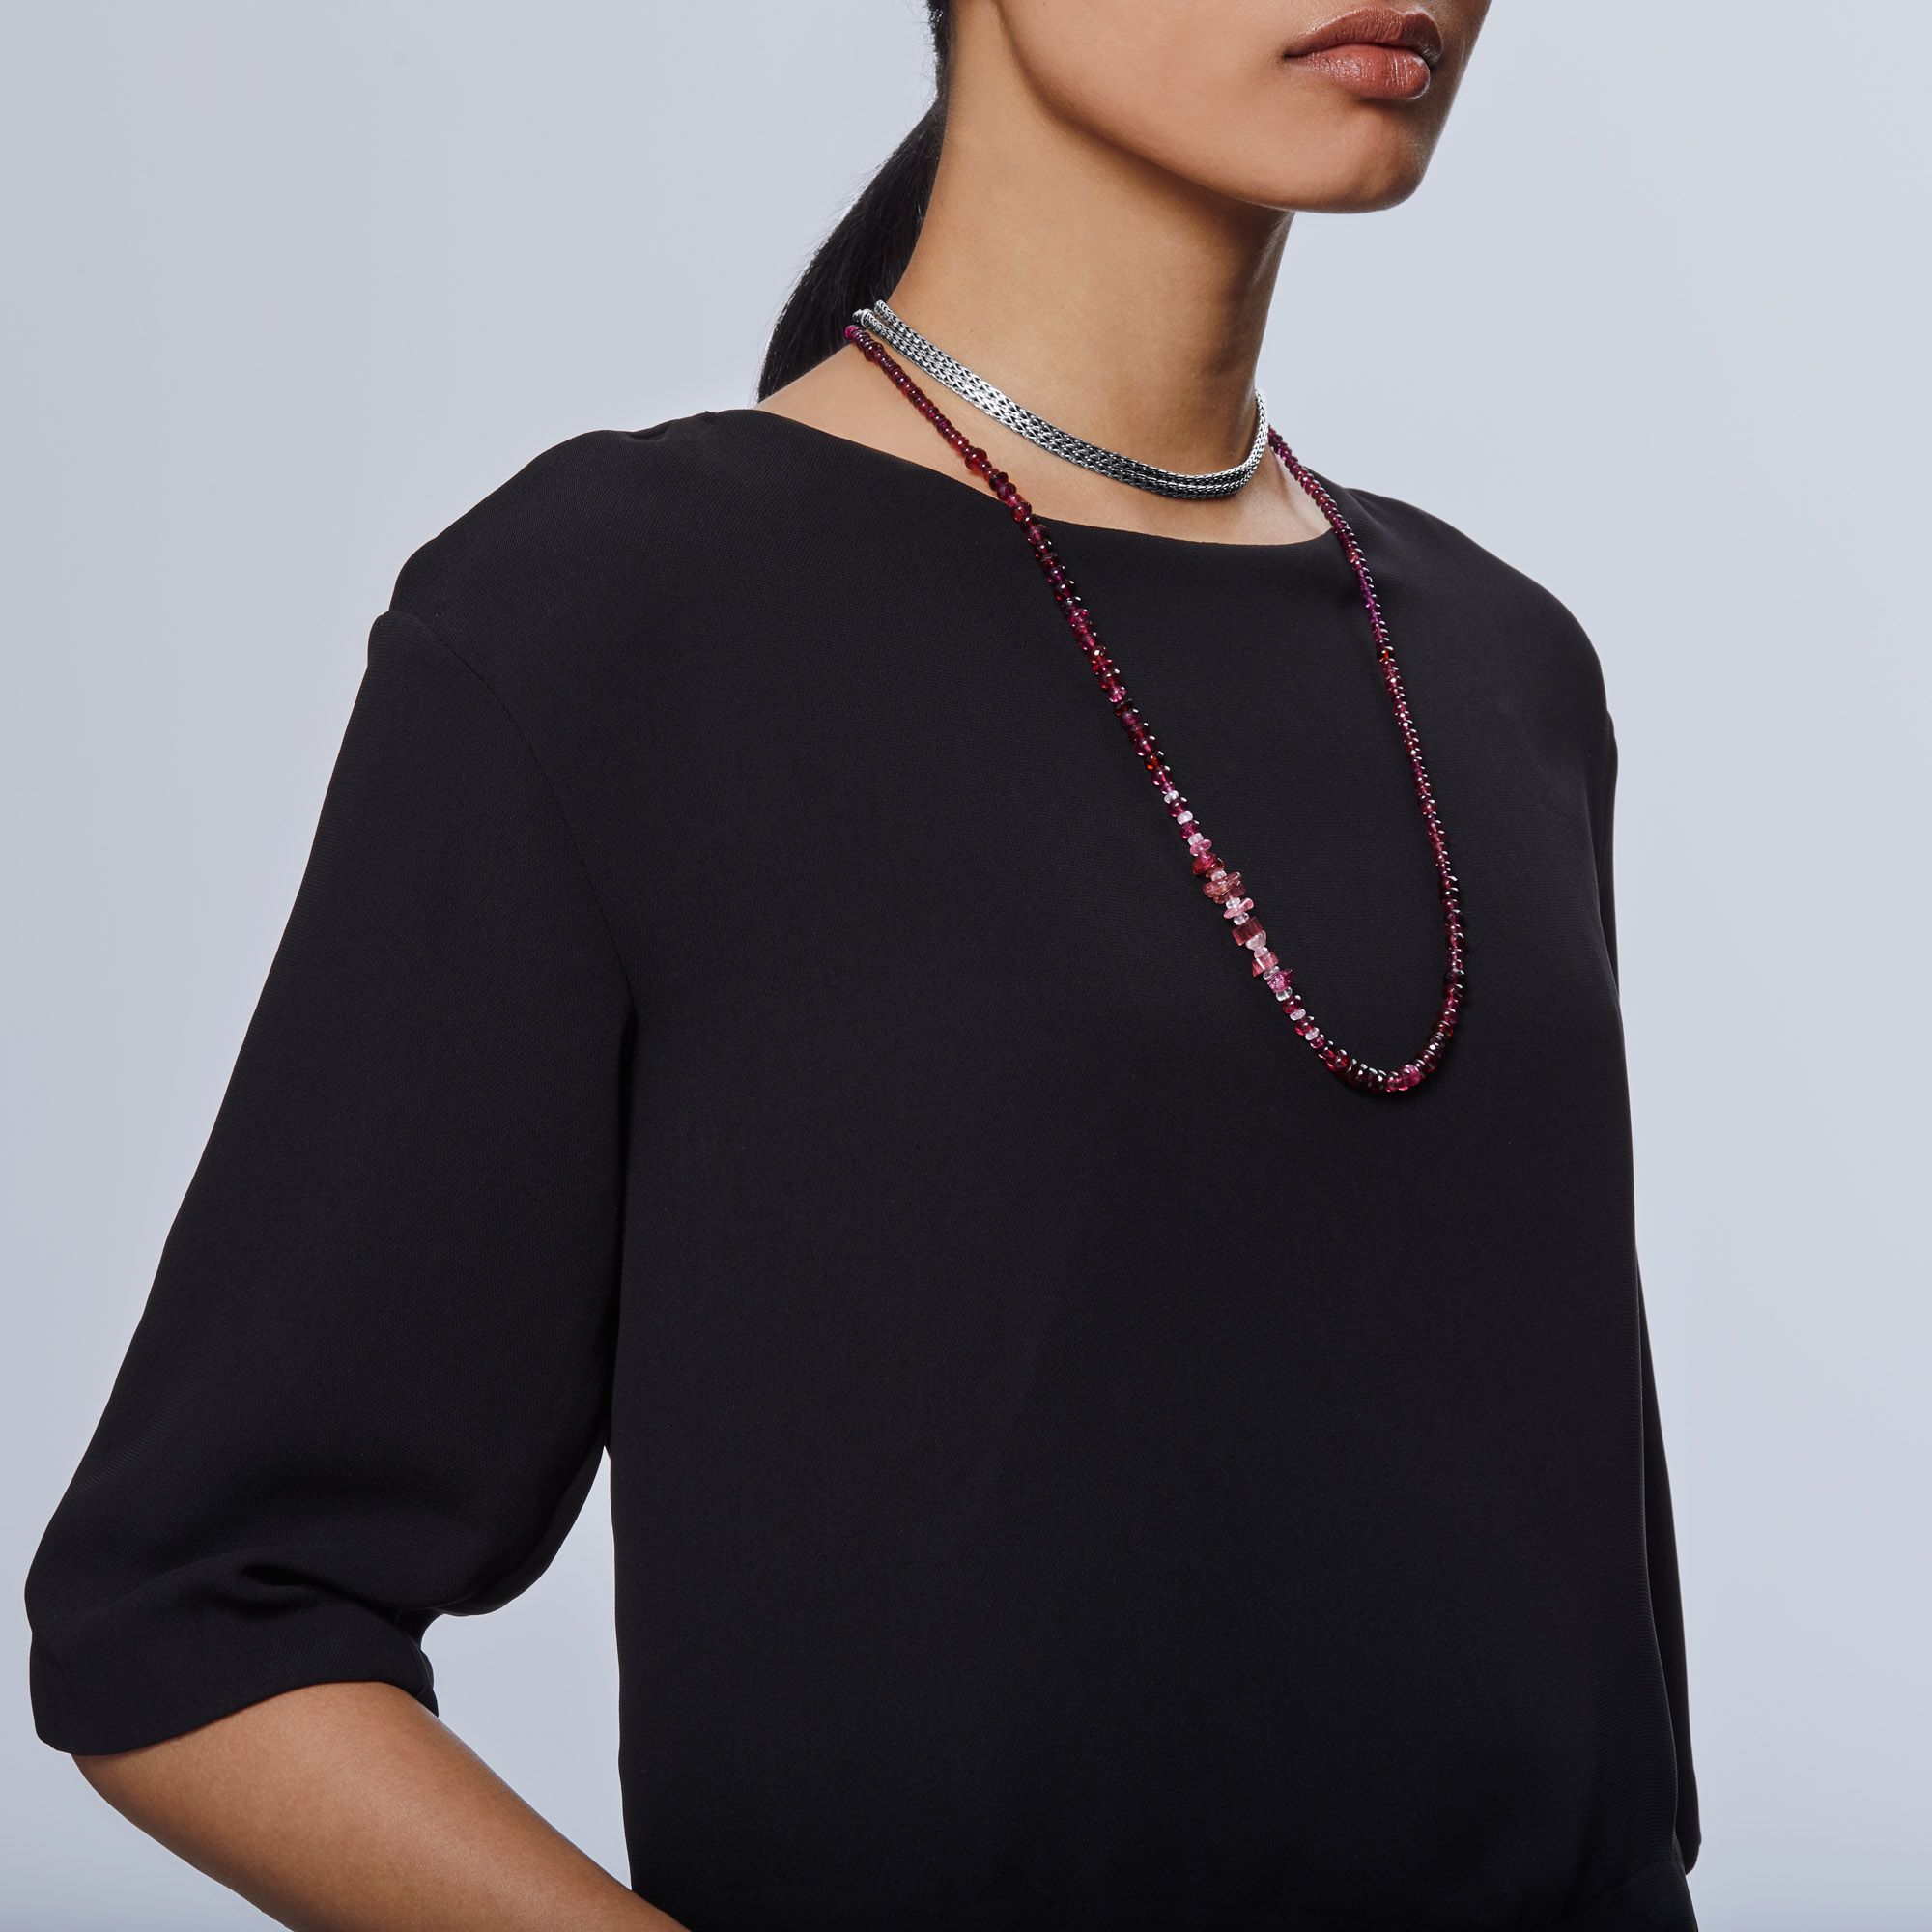 Asli Classic Chain Link Station Necklace in Silver, Gemstone, Pink Tourmaline, large